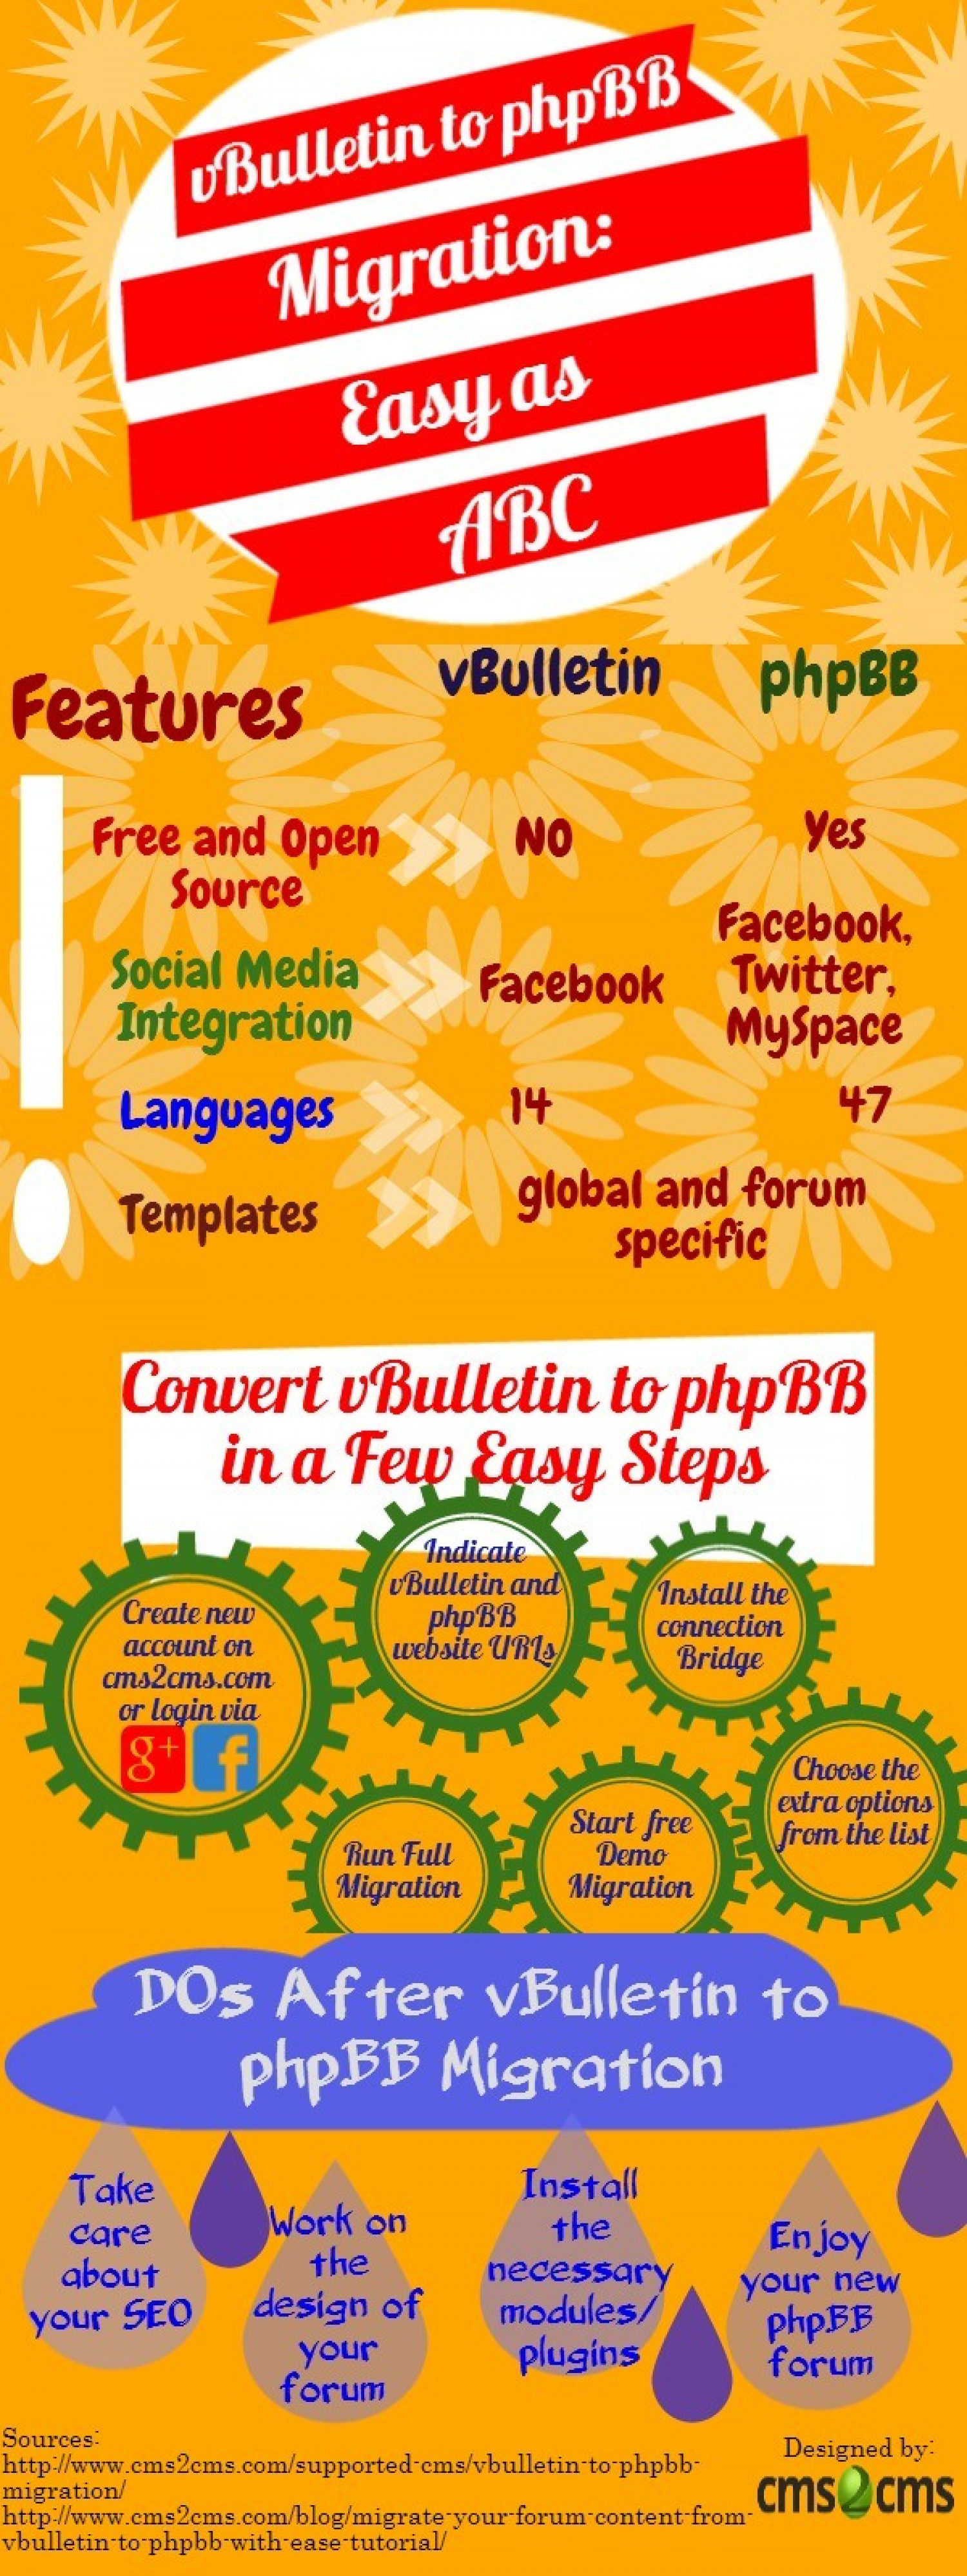 vBulletin to phpBB Migration: Easy as ABC Infographic